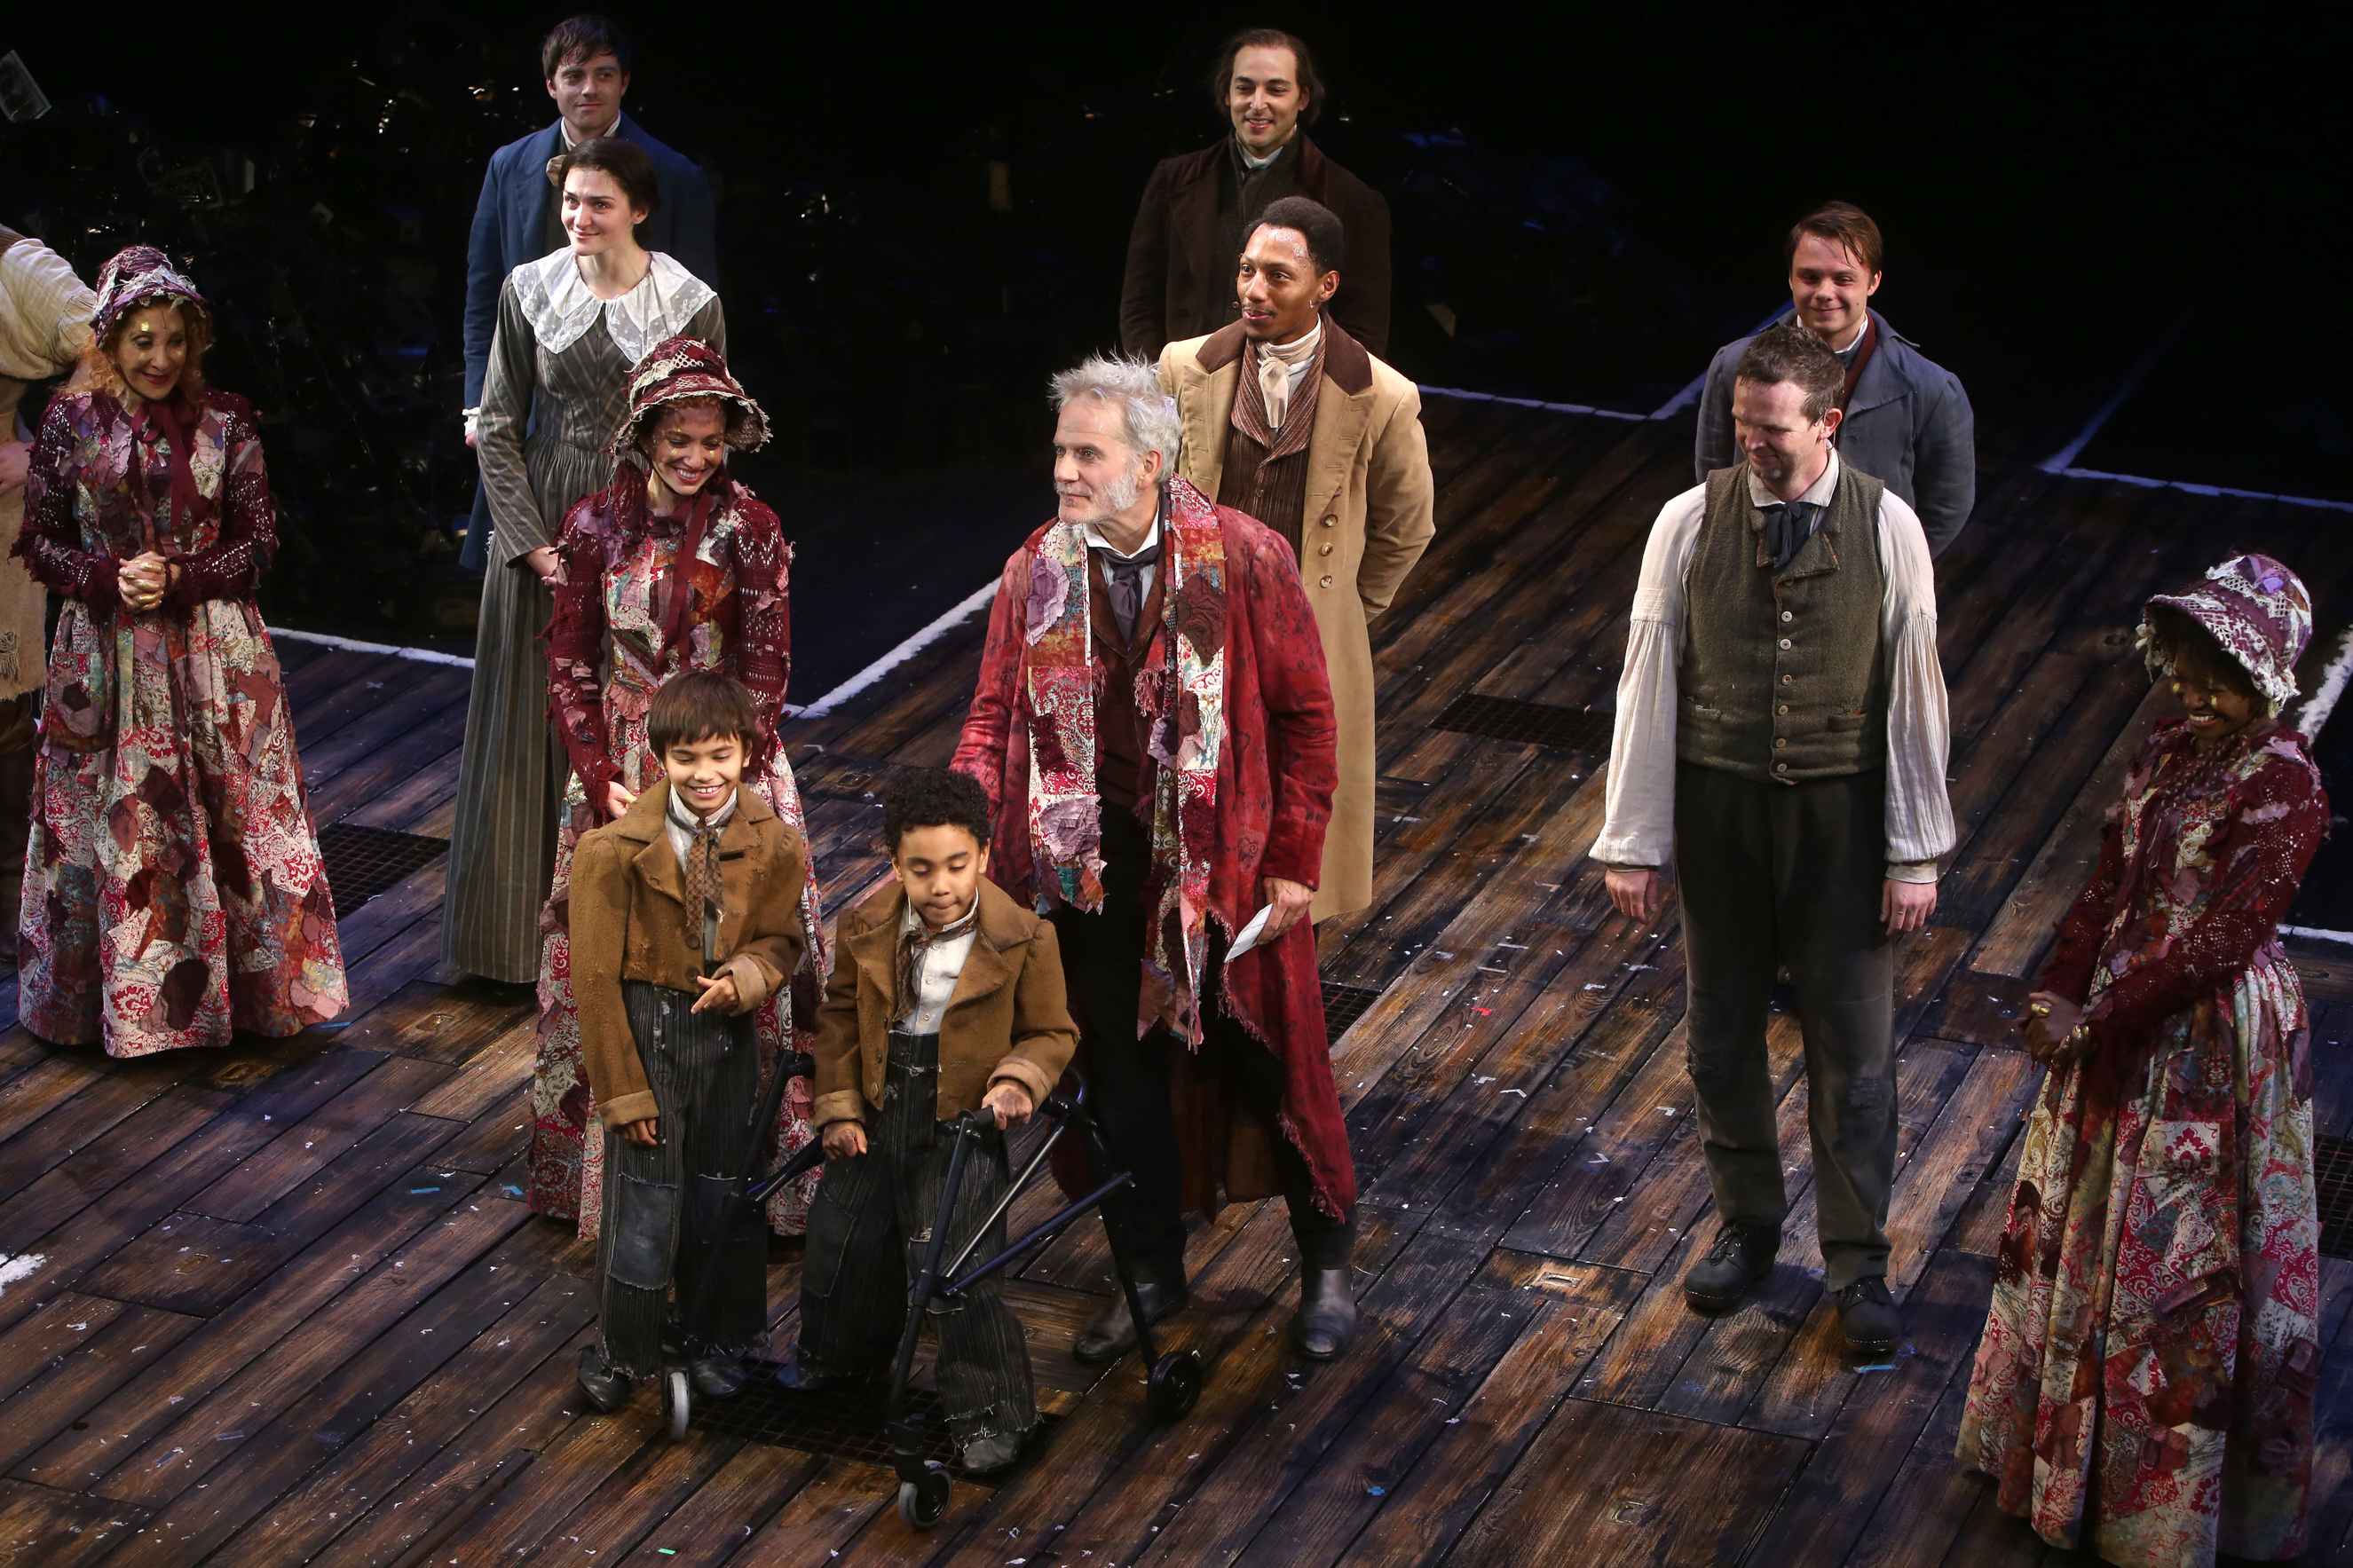 Playbill From A Christmas Carol At Players Theater Nyc 2020 Go Inside Opening Night for Broadway's A Christmas Carol, Starring